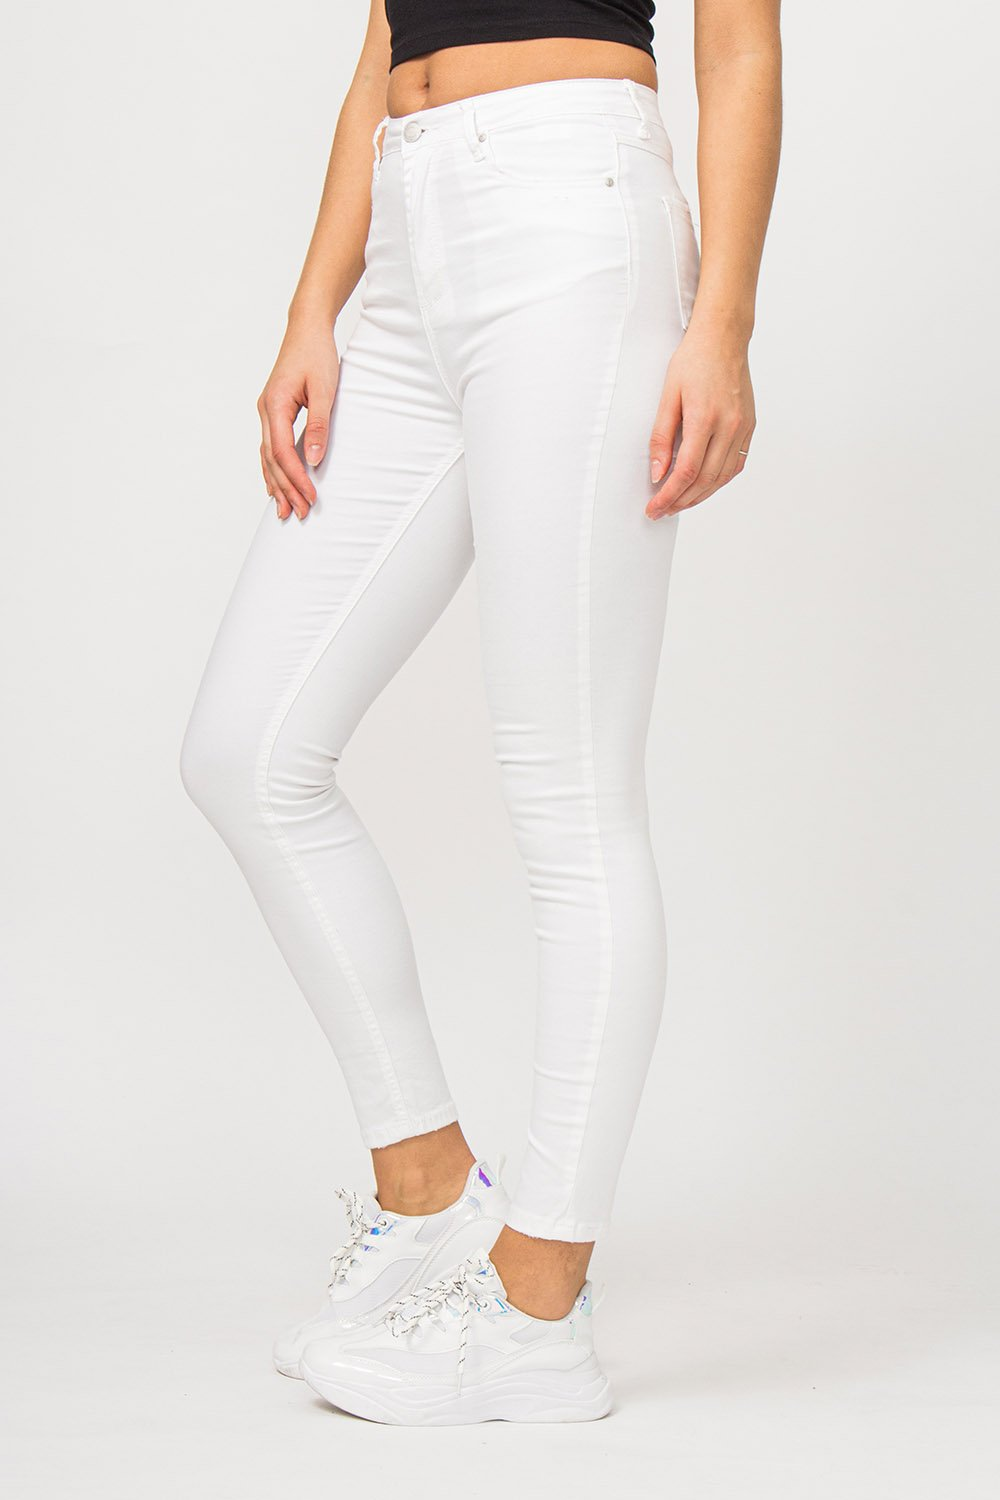 Jeans Sally - The Fashionboutique - Colloseum